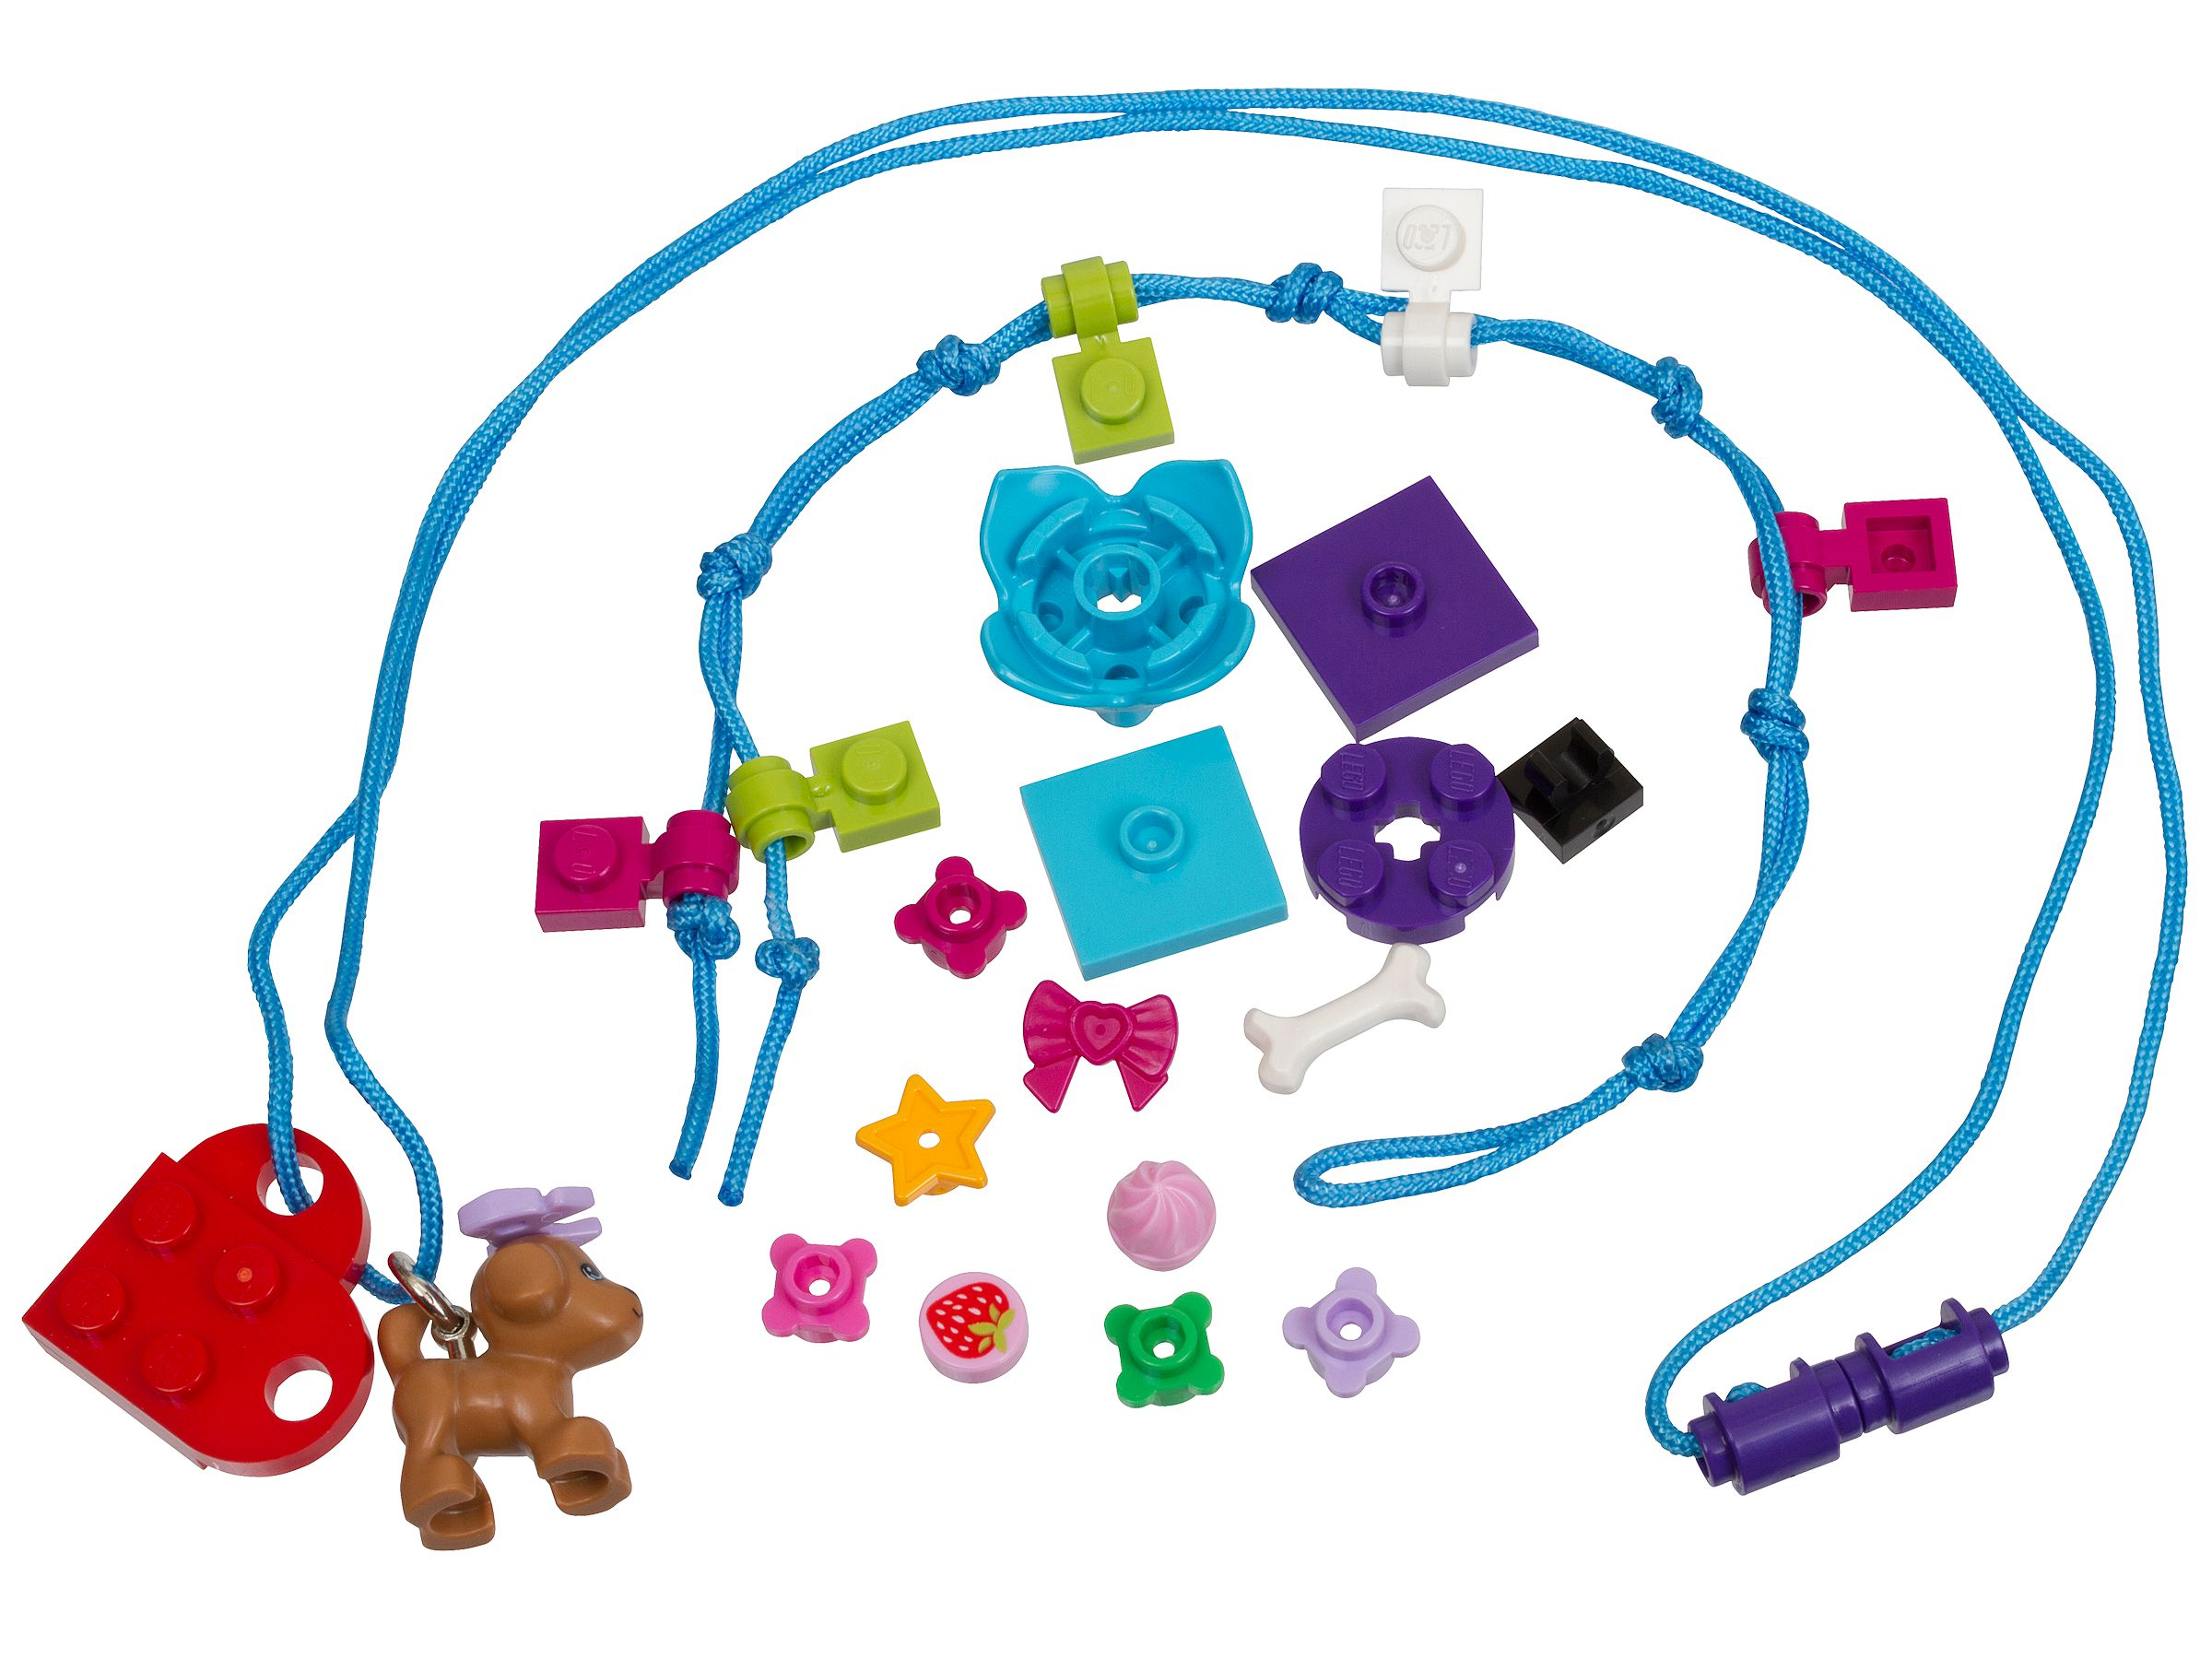 LEGO Gear 853440 LEGO® Friends Schmuck-Set LEGO_853440.jpg